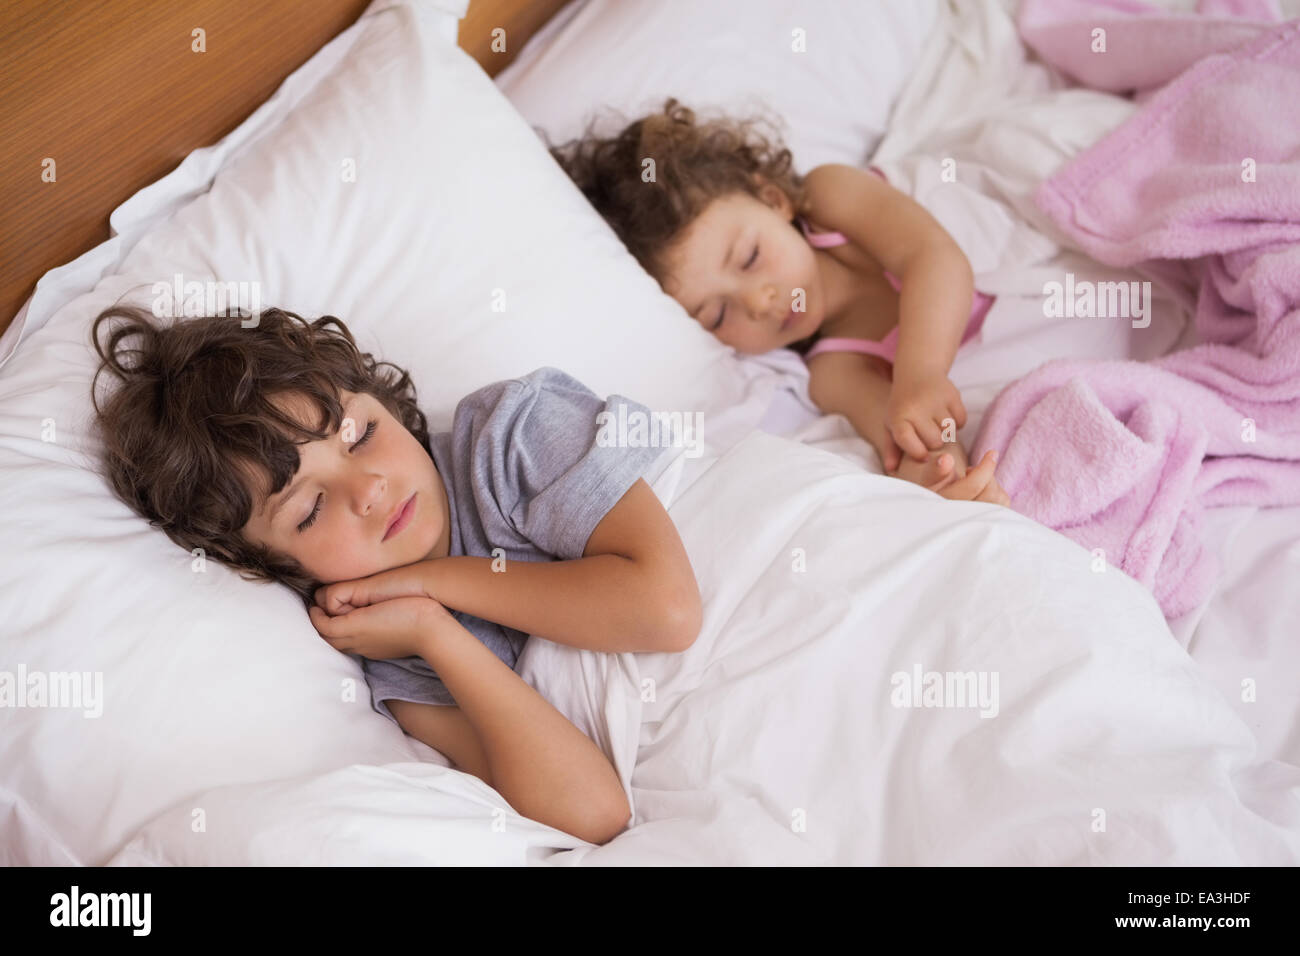 Young girl and boy sleeping in bed stock photo royalty for Sleeping bed